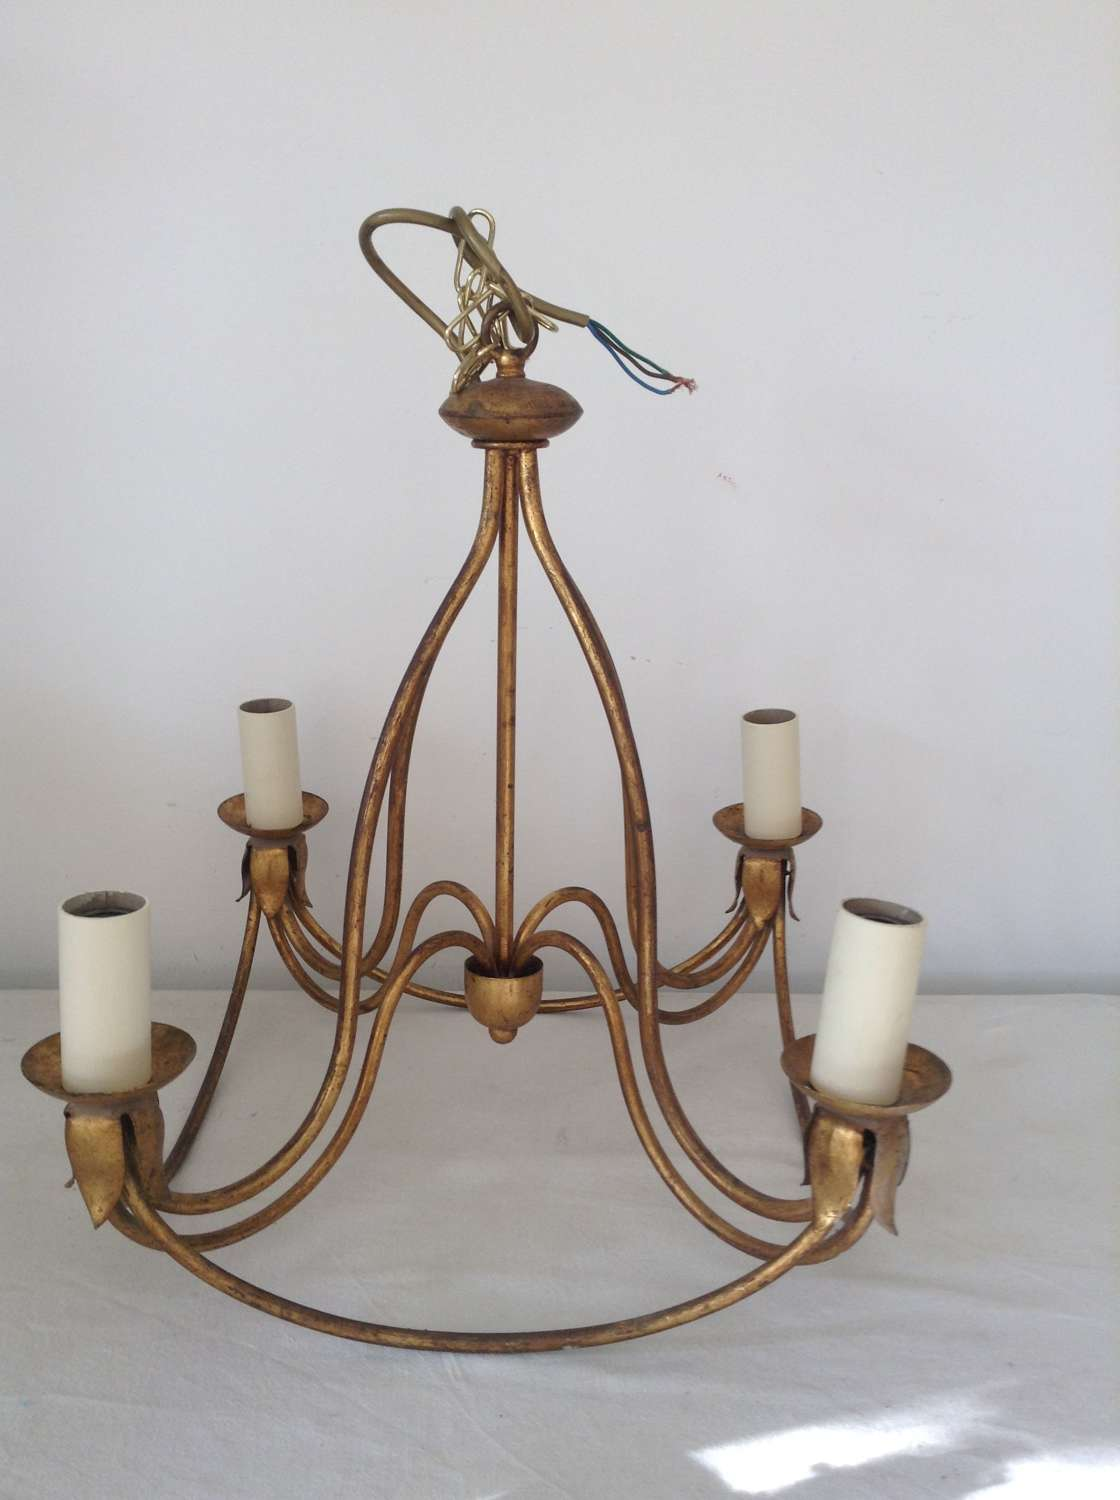 Gold painted 4-arm metal chandelier Mid 20th century